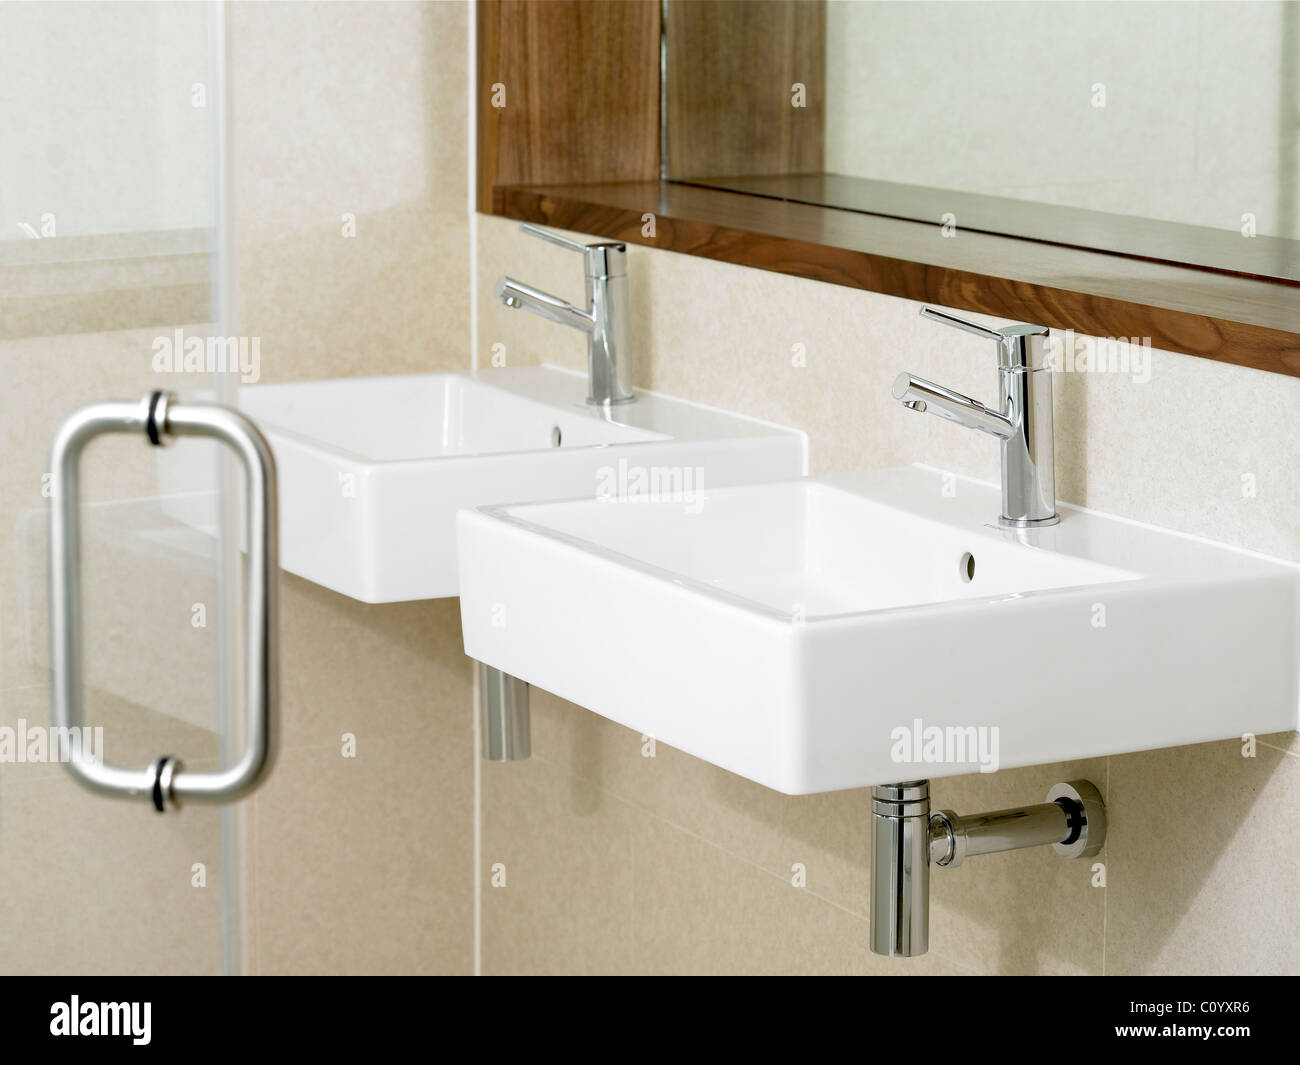 Interior shot of bathroom sinks - Stock Image